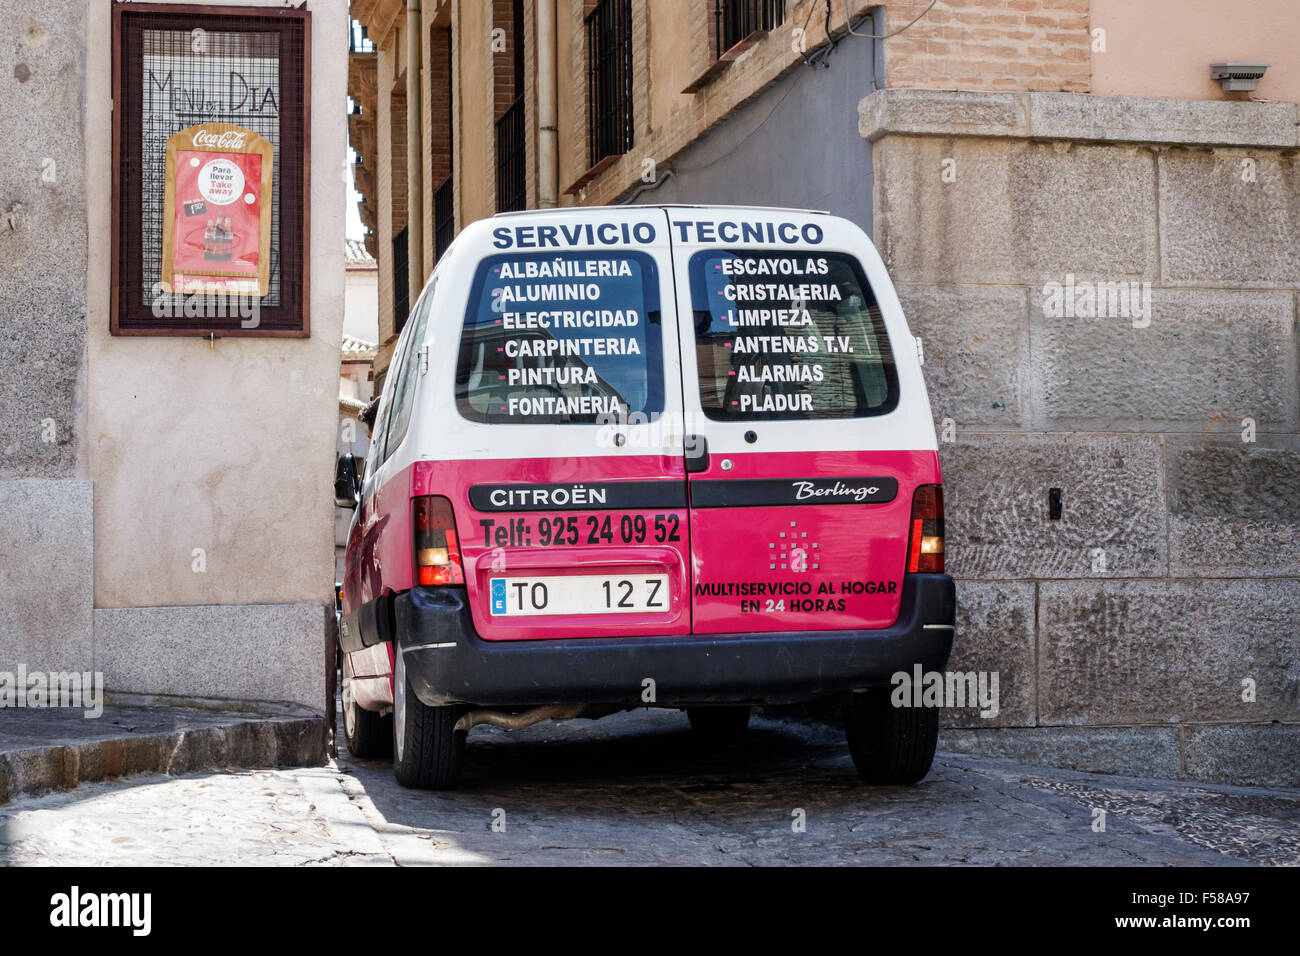 Toledo Spain Europe Spanish narrow street alley van Citroen trade